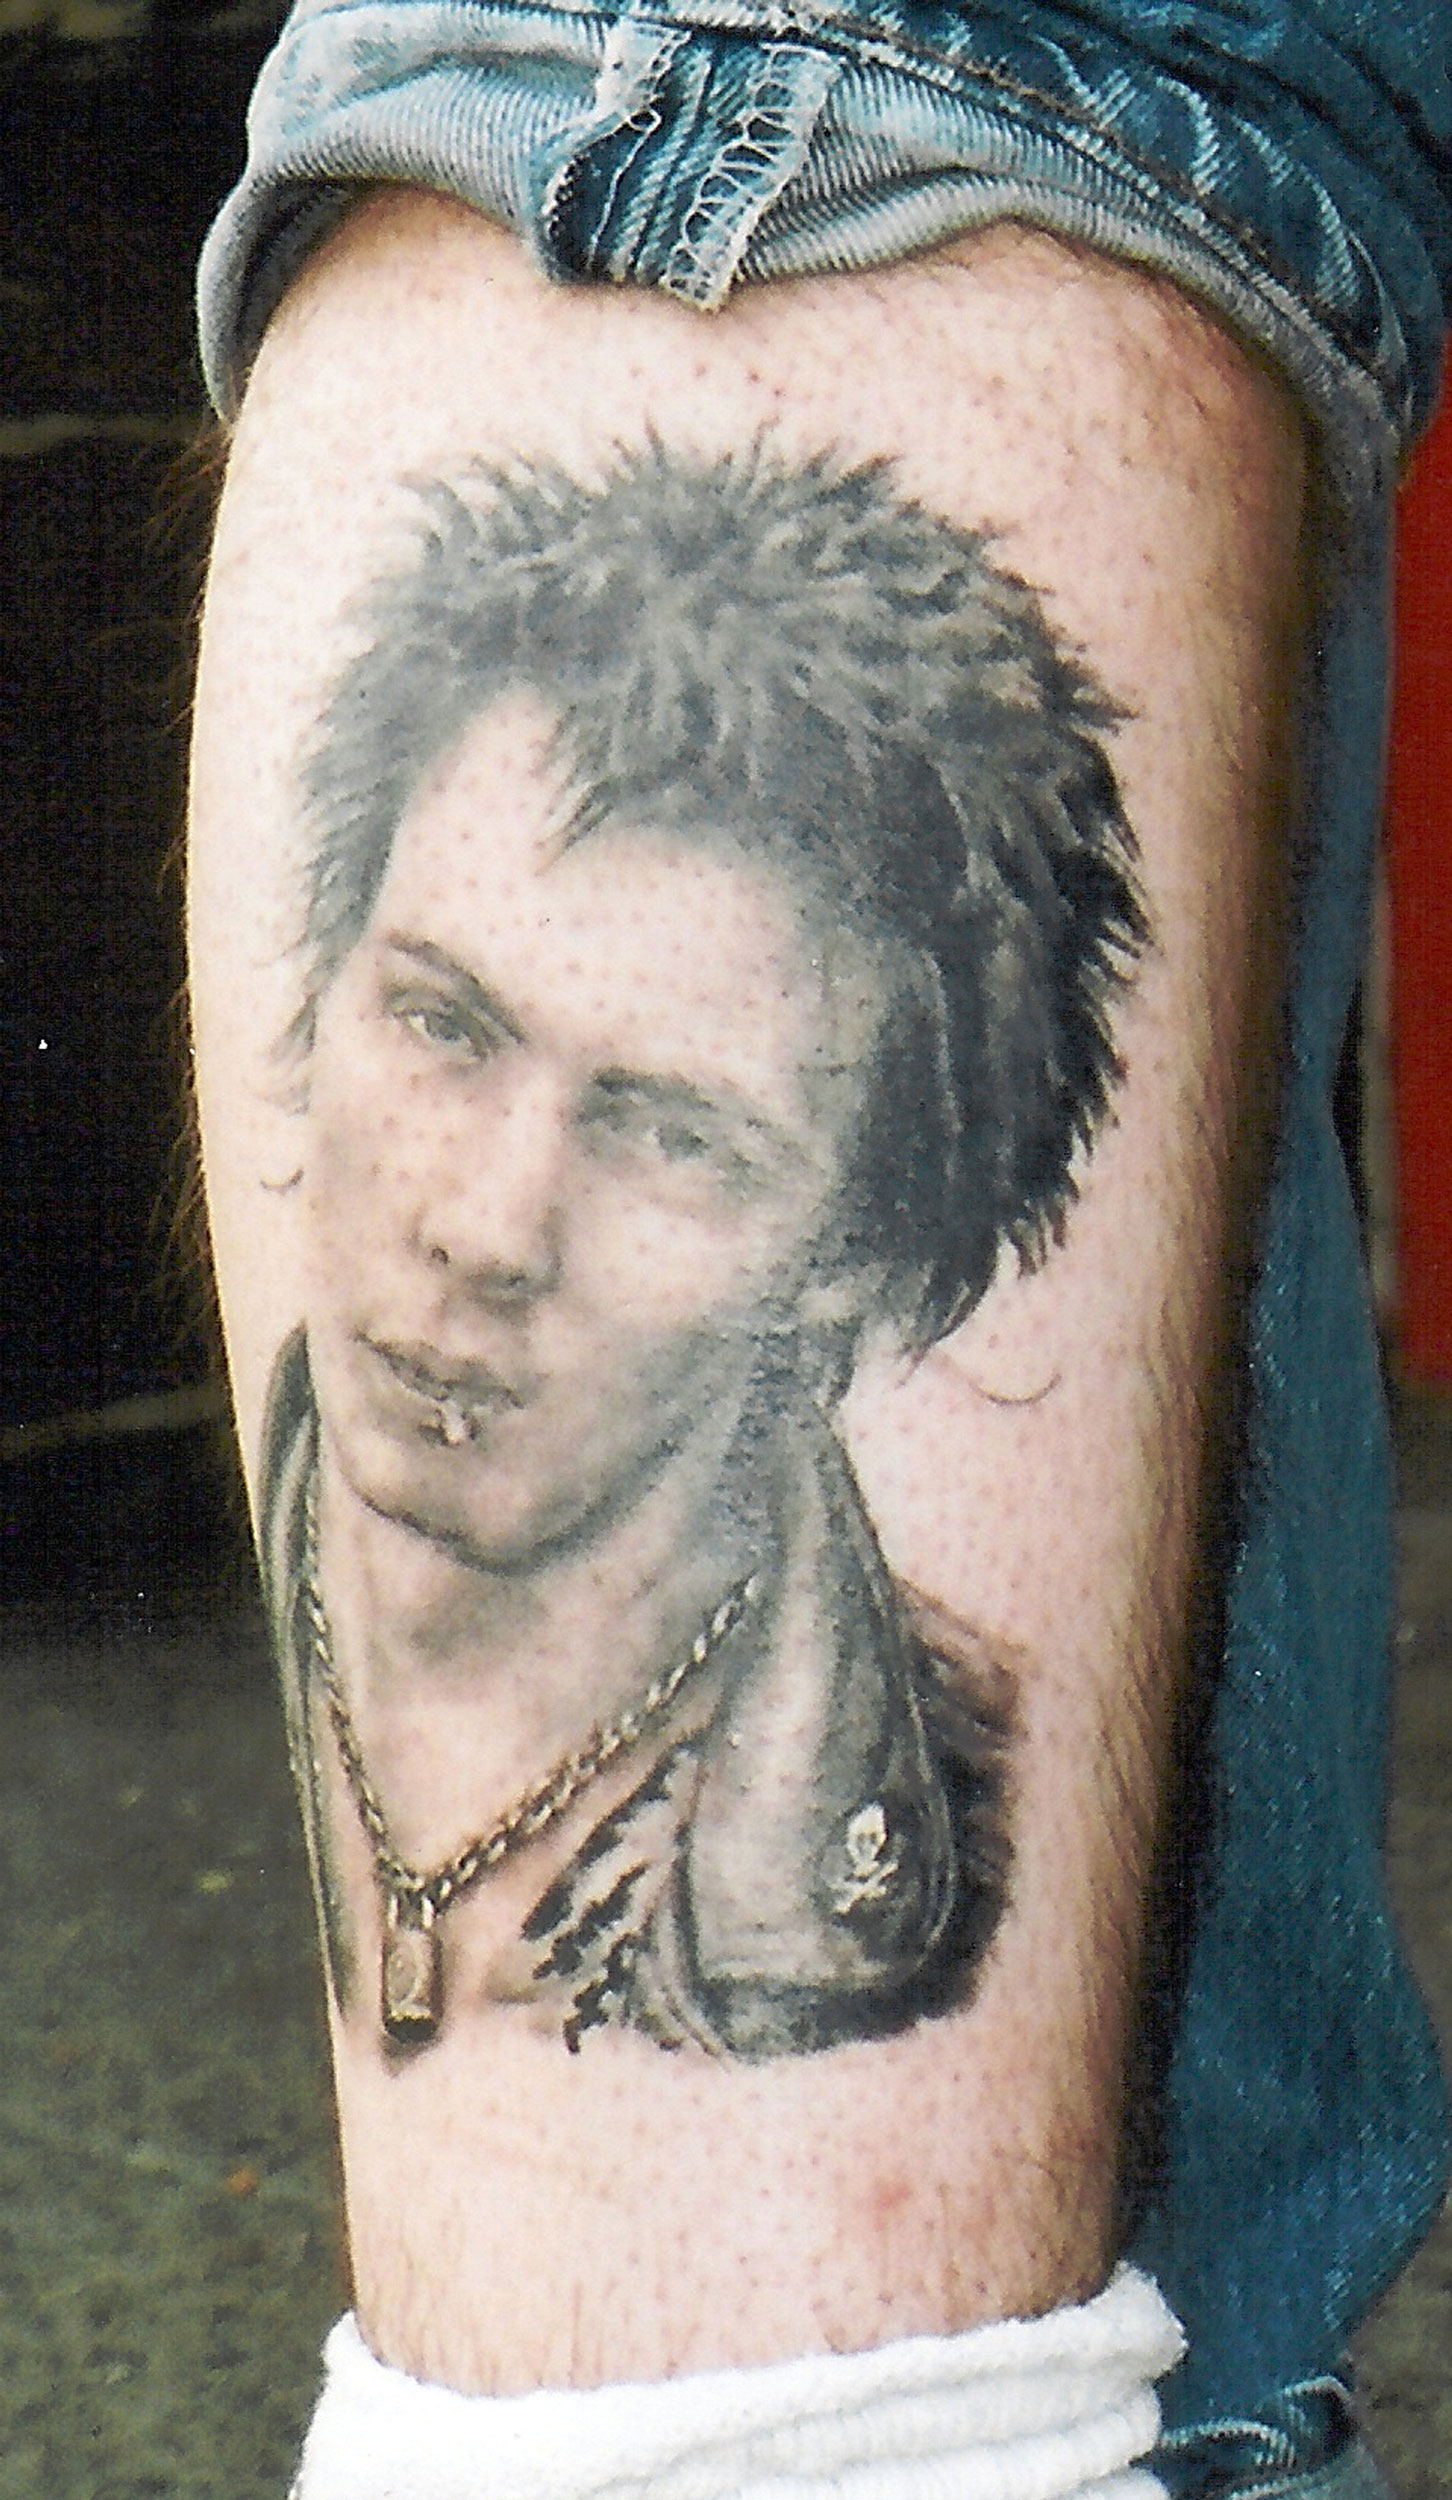 Black and Grey Sid Vicious Portrait Tattoo, (healed) tattooed in 2000